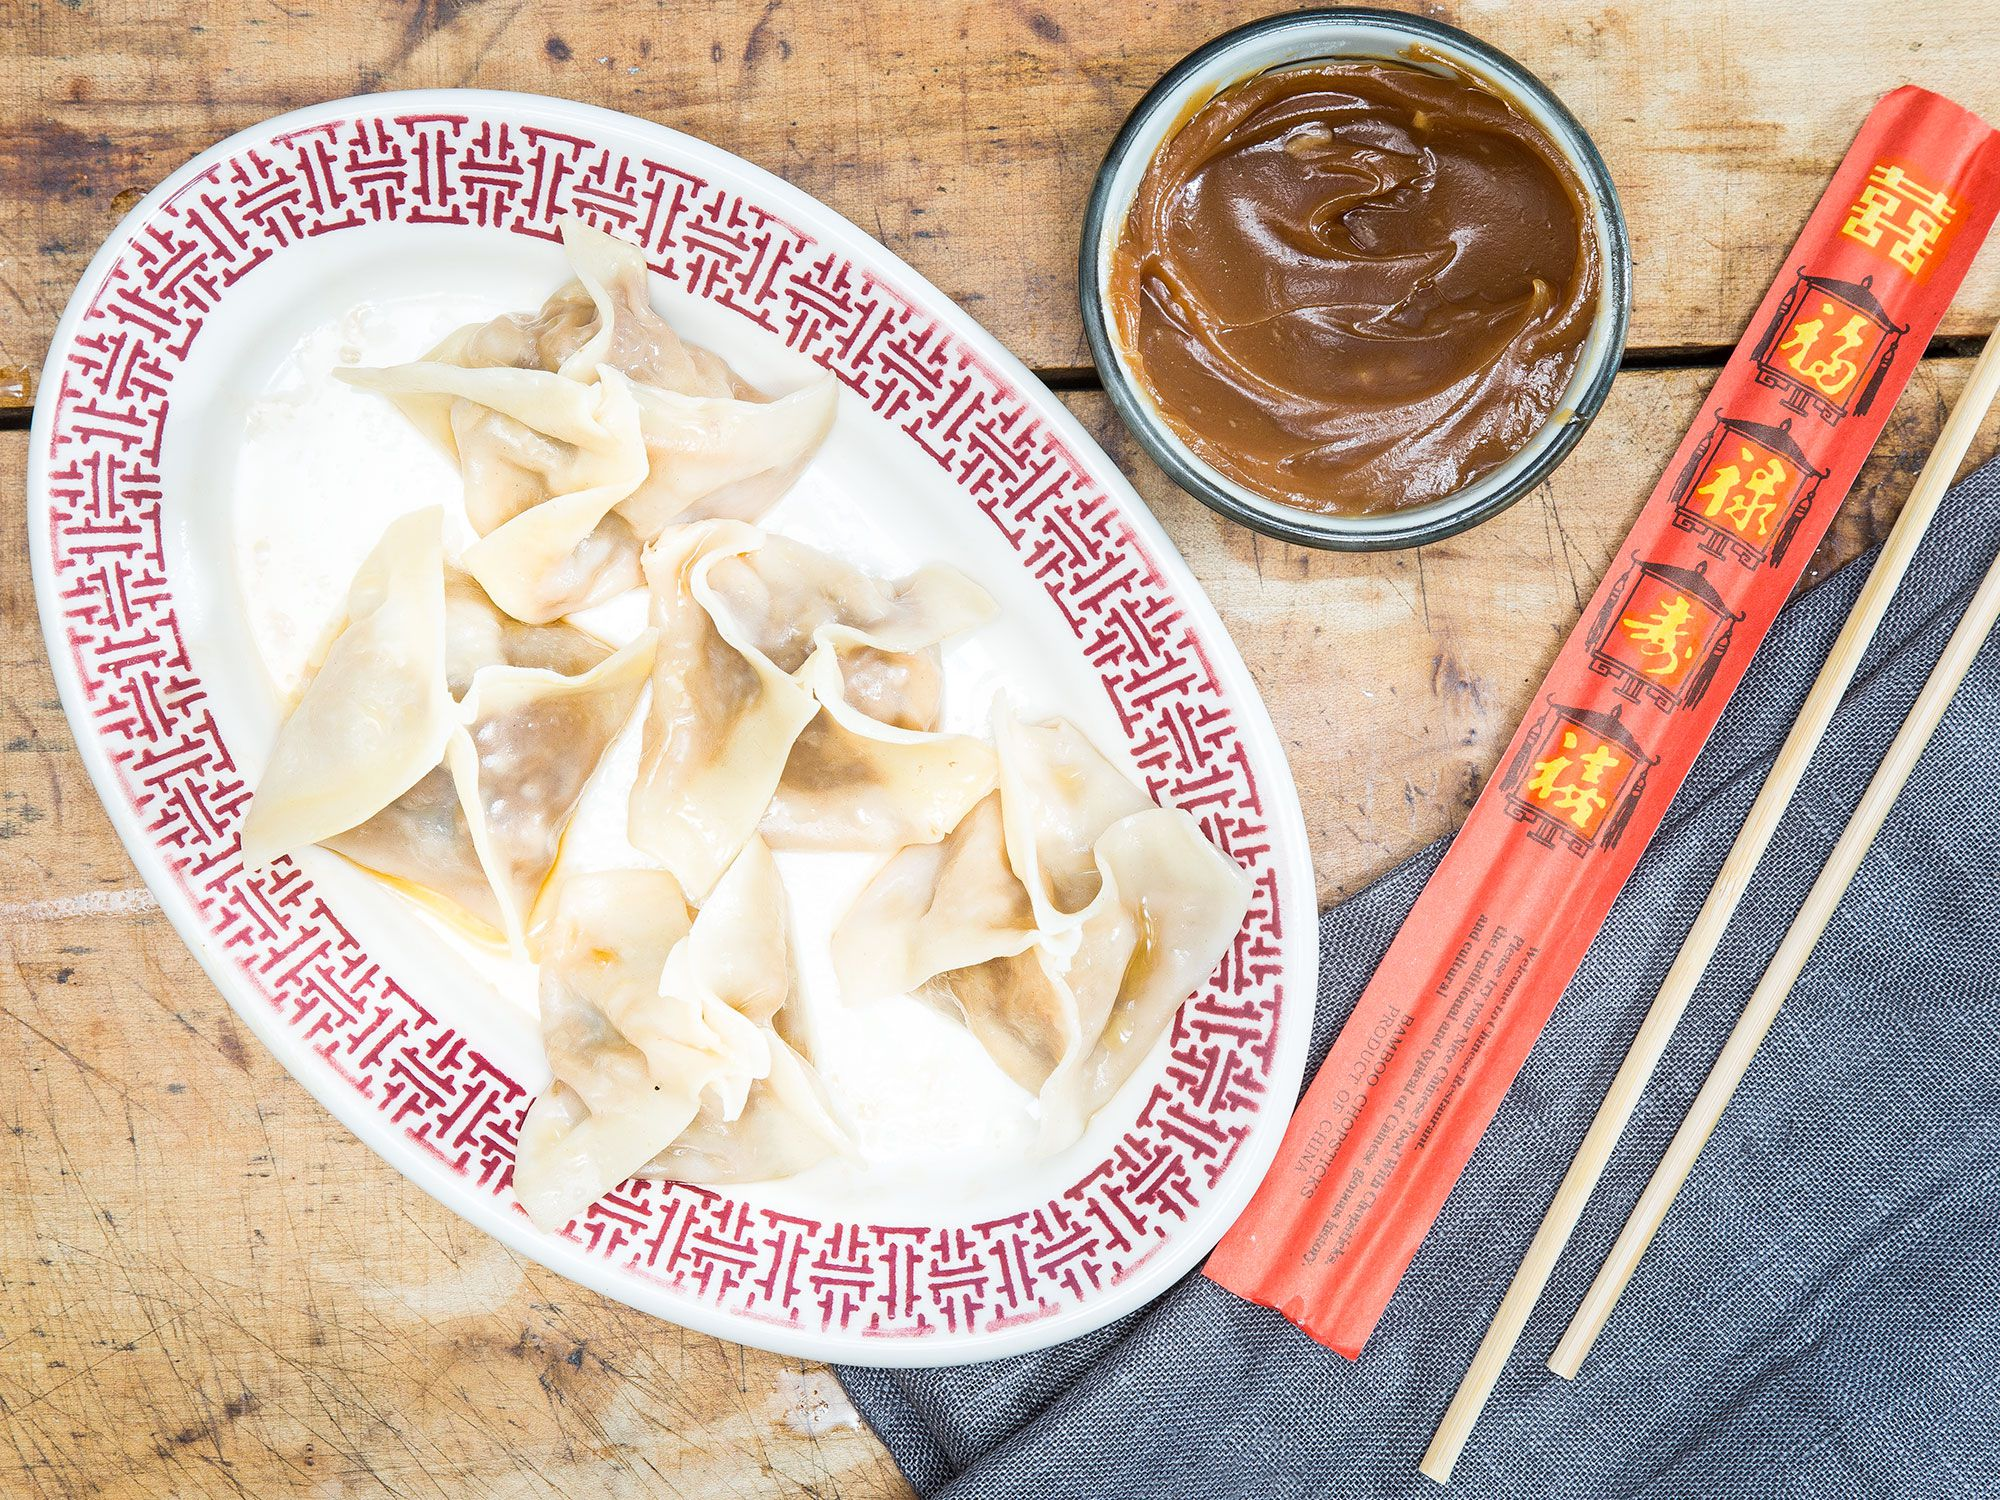 """The now-shuttered Crystal Palace of Montreal used to serve these beef dumplings as an homage to the Quebecois favorite, peanut butter dumplings. Get the recipe for <a href=""""http://www.saveur.com/montreal-peanut-butter-dumplings"""">Crystal Palace's Hunan Dumplings with Peanut Sauce</a>"""